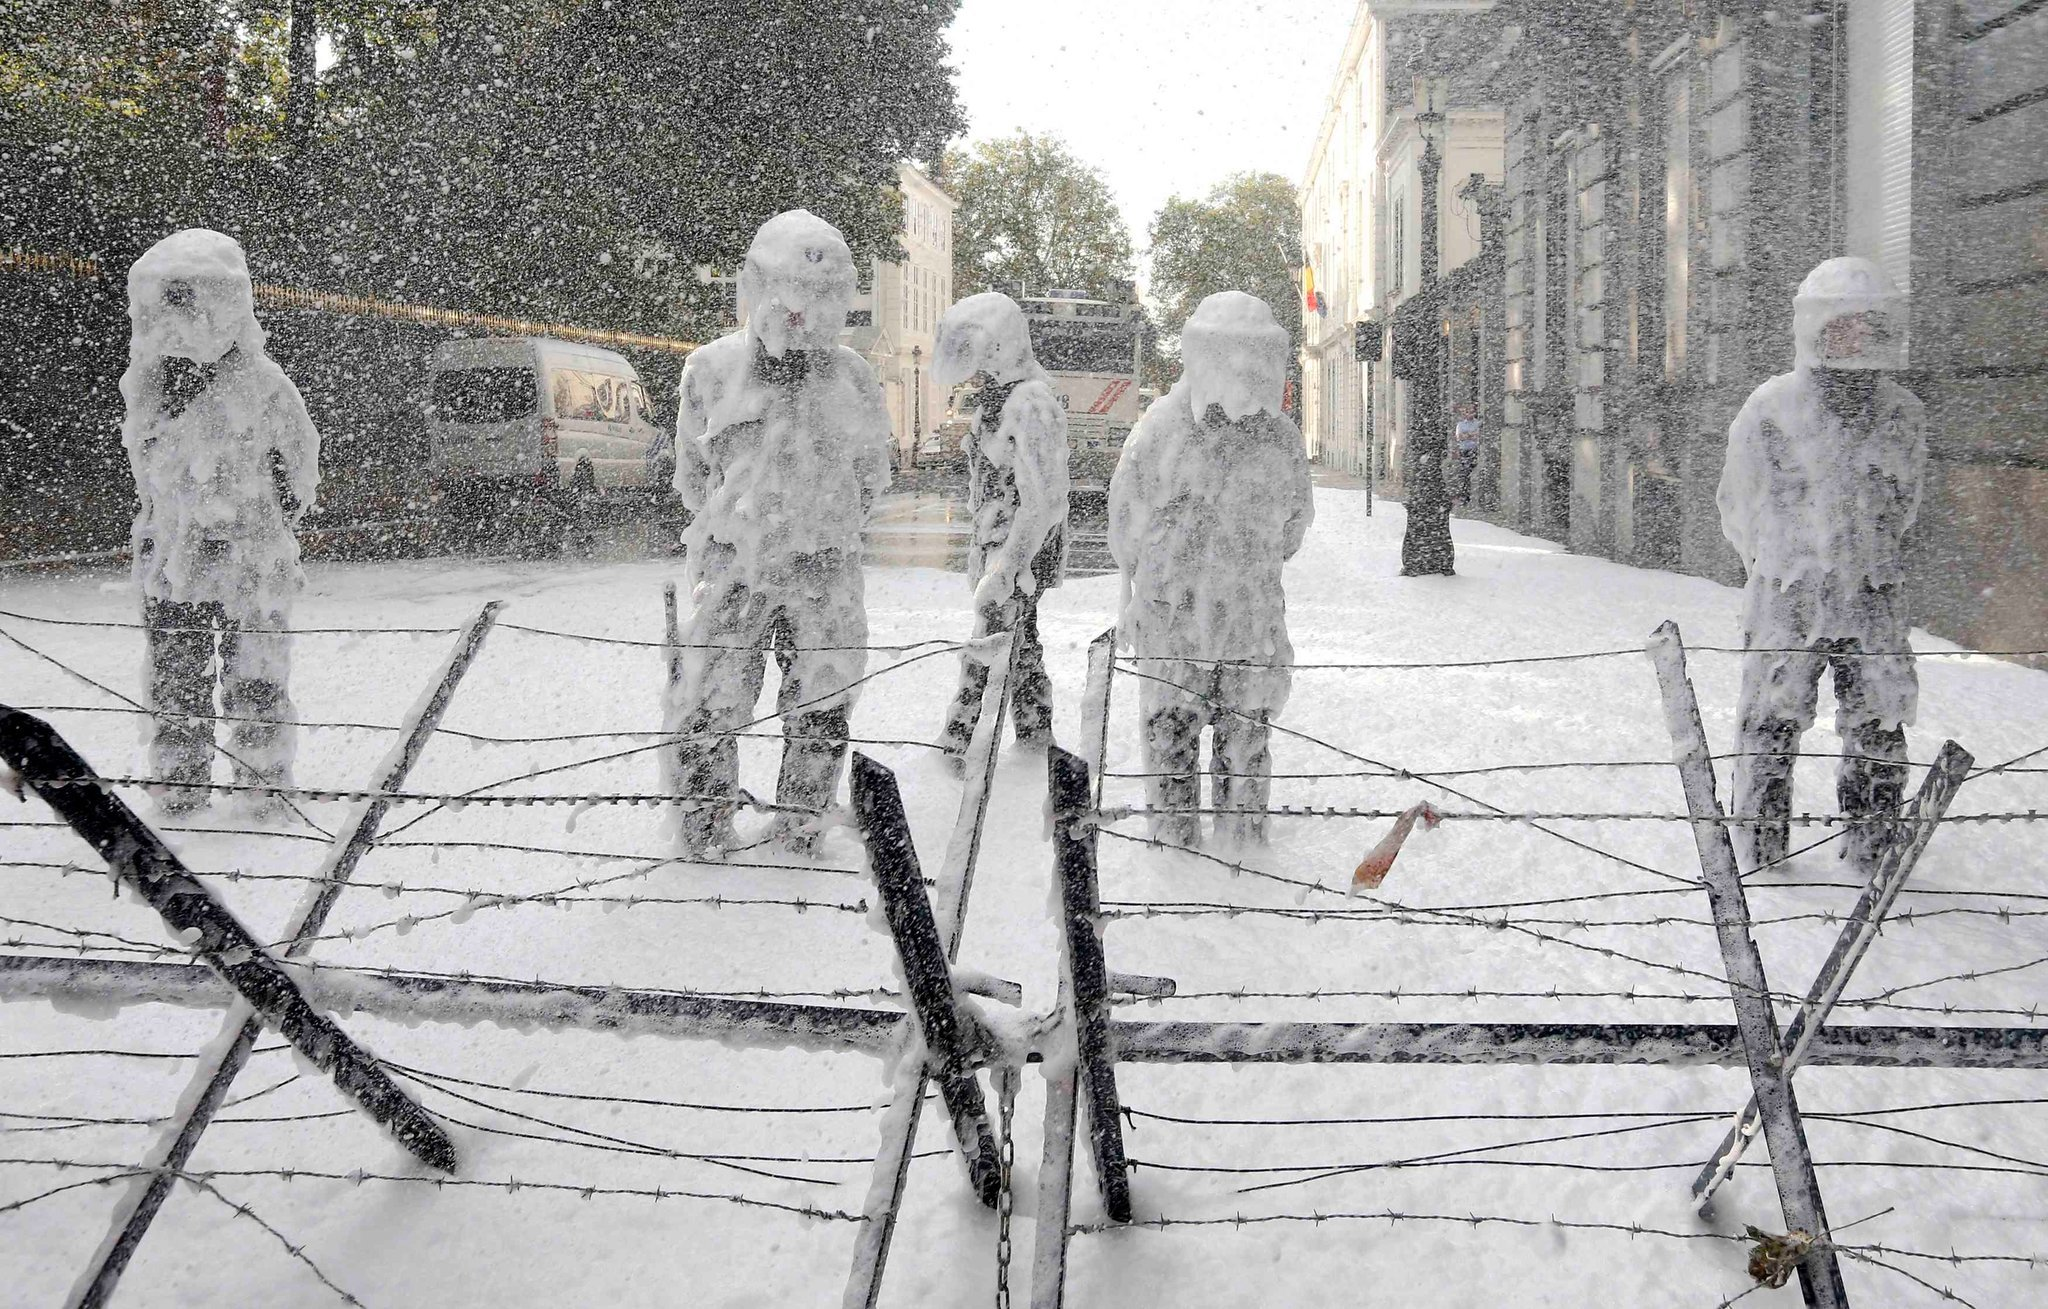 Riot Police in Foam at a Protest in Belgium | Photo by Yves Herman | Photojournalism Tips